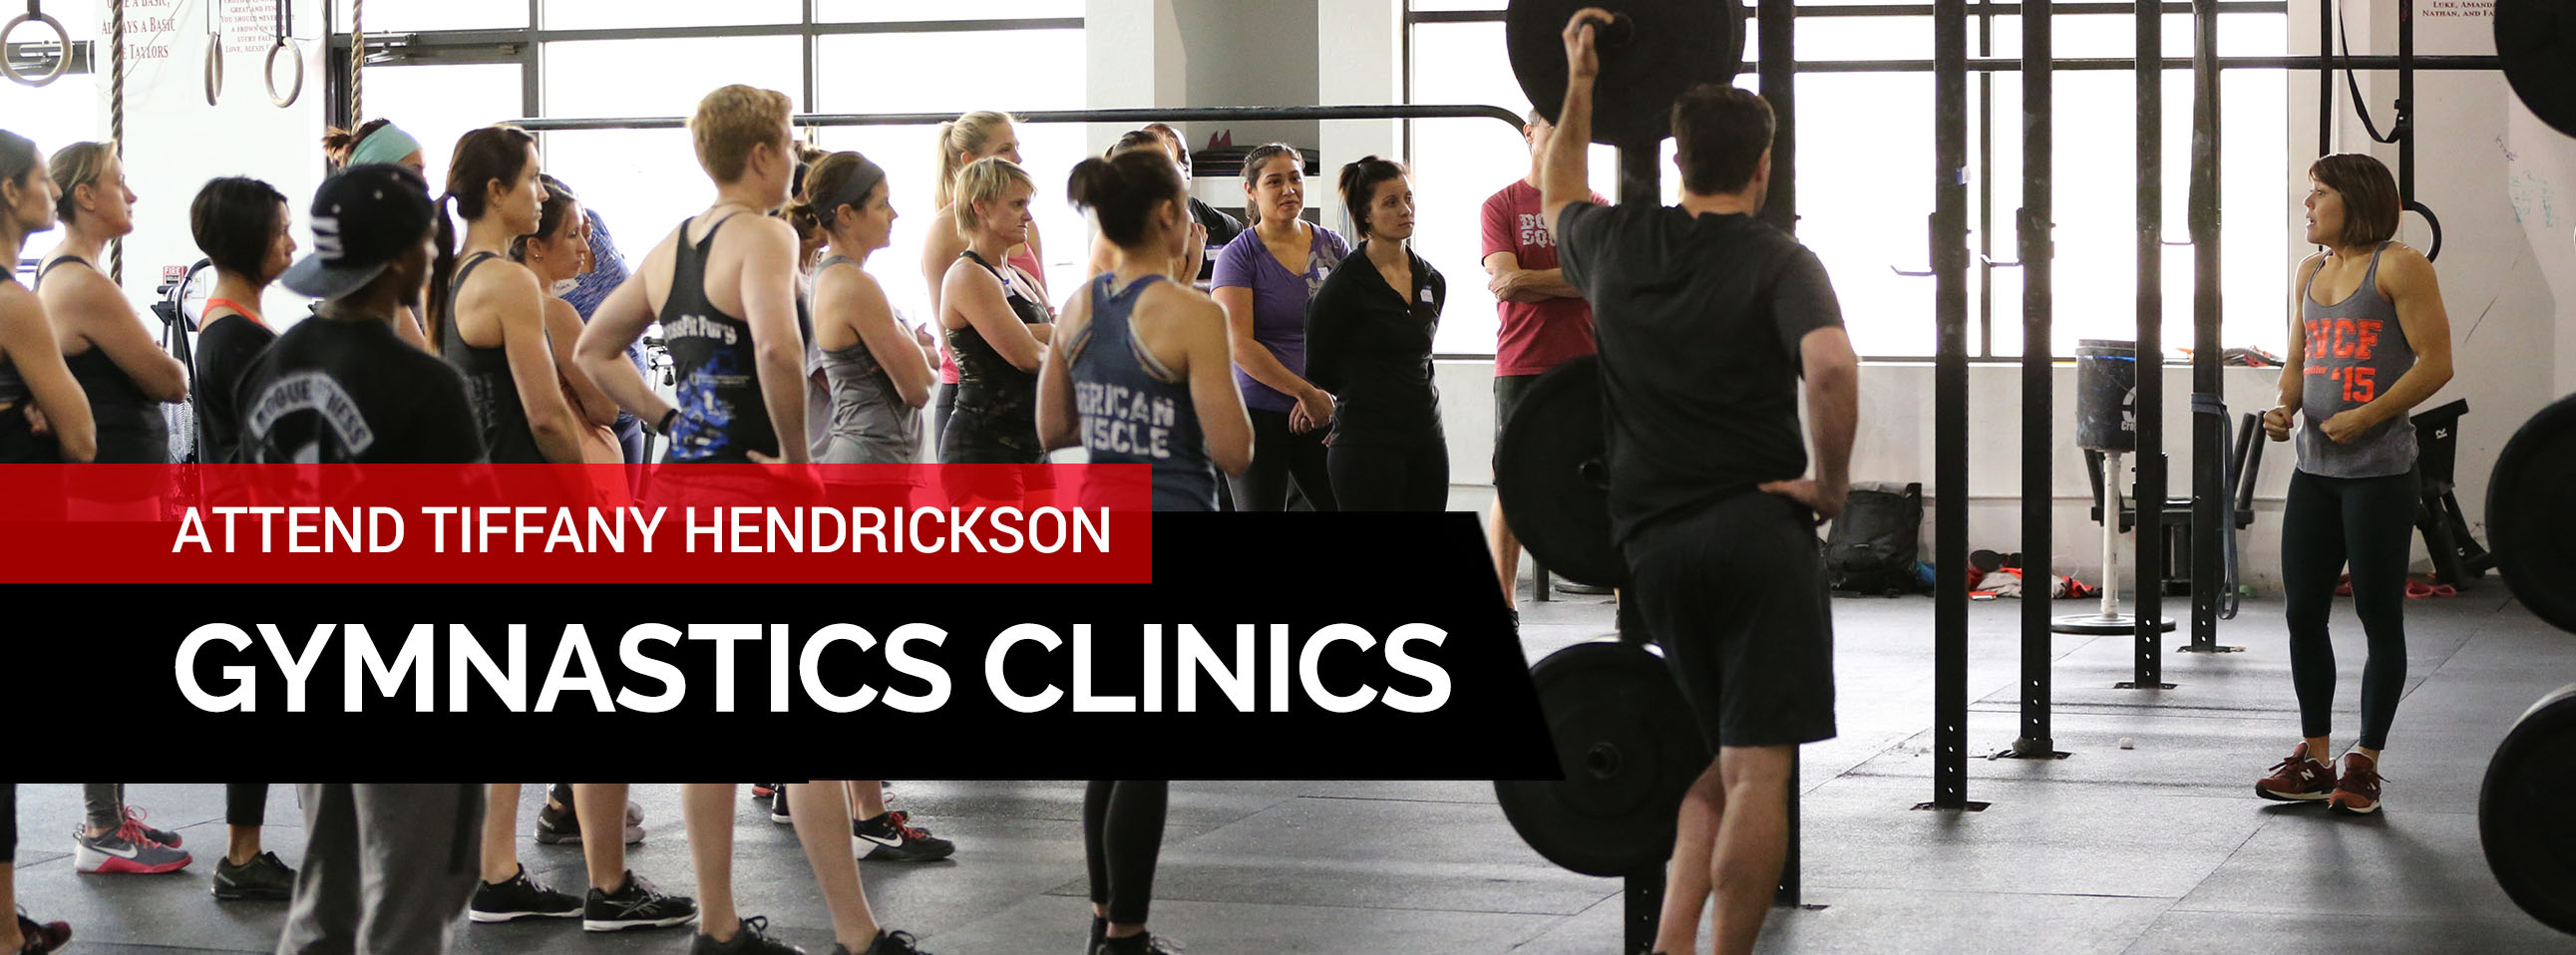 Tiffany Hendrickson Coaching Iron Athlete Gymnastics Clinics